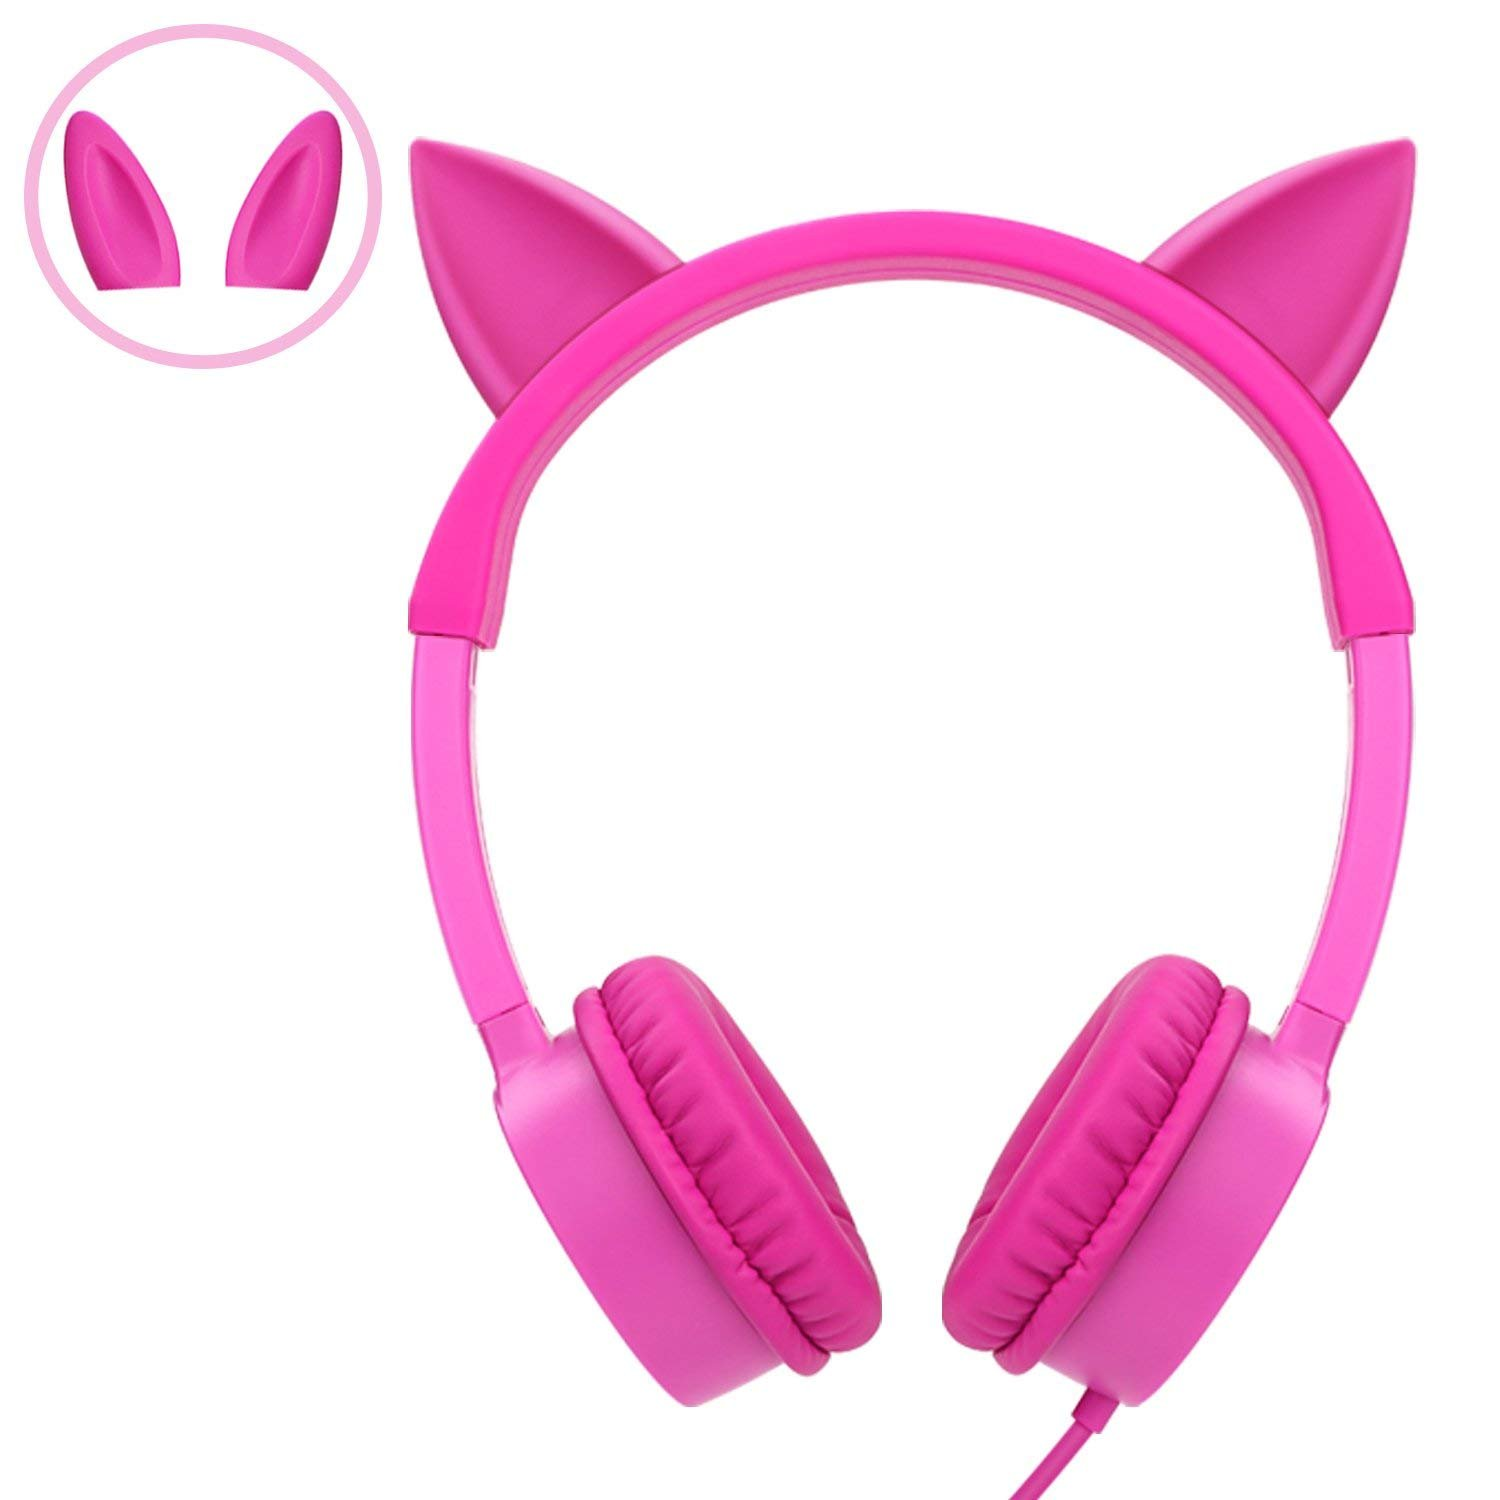 Kids Headphones, Vogek Cat/Bunny Ear Wired On-Ear Headphones Headsets with 85dB Volume Limited, Children Headphones for Kids - Pink by Vogek